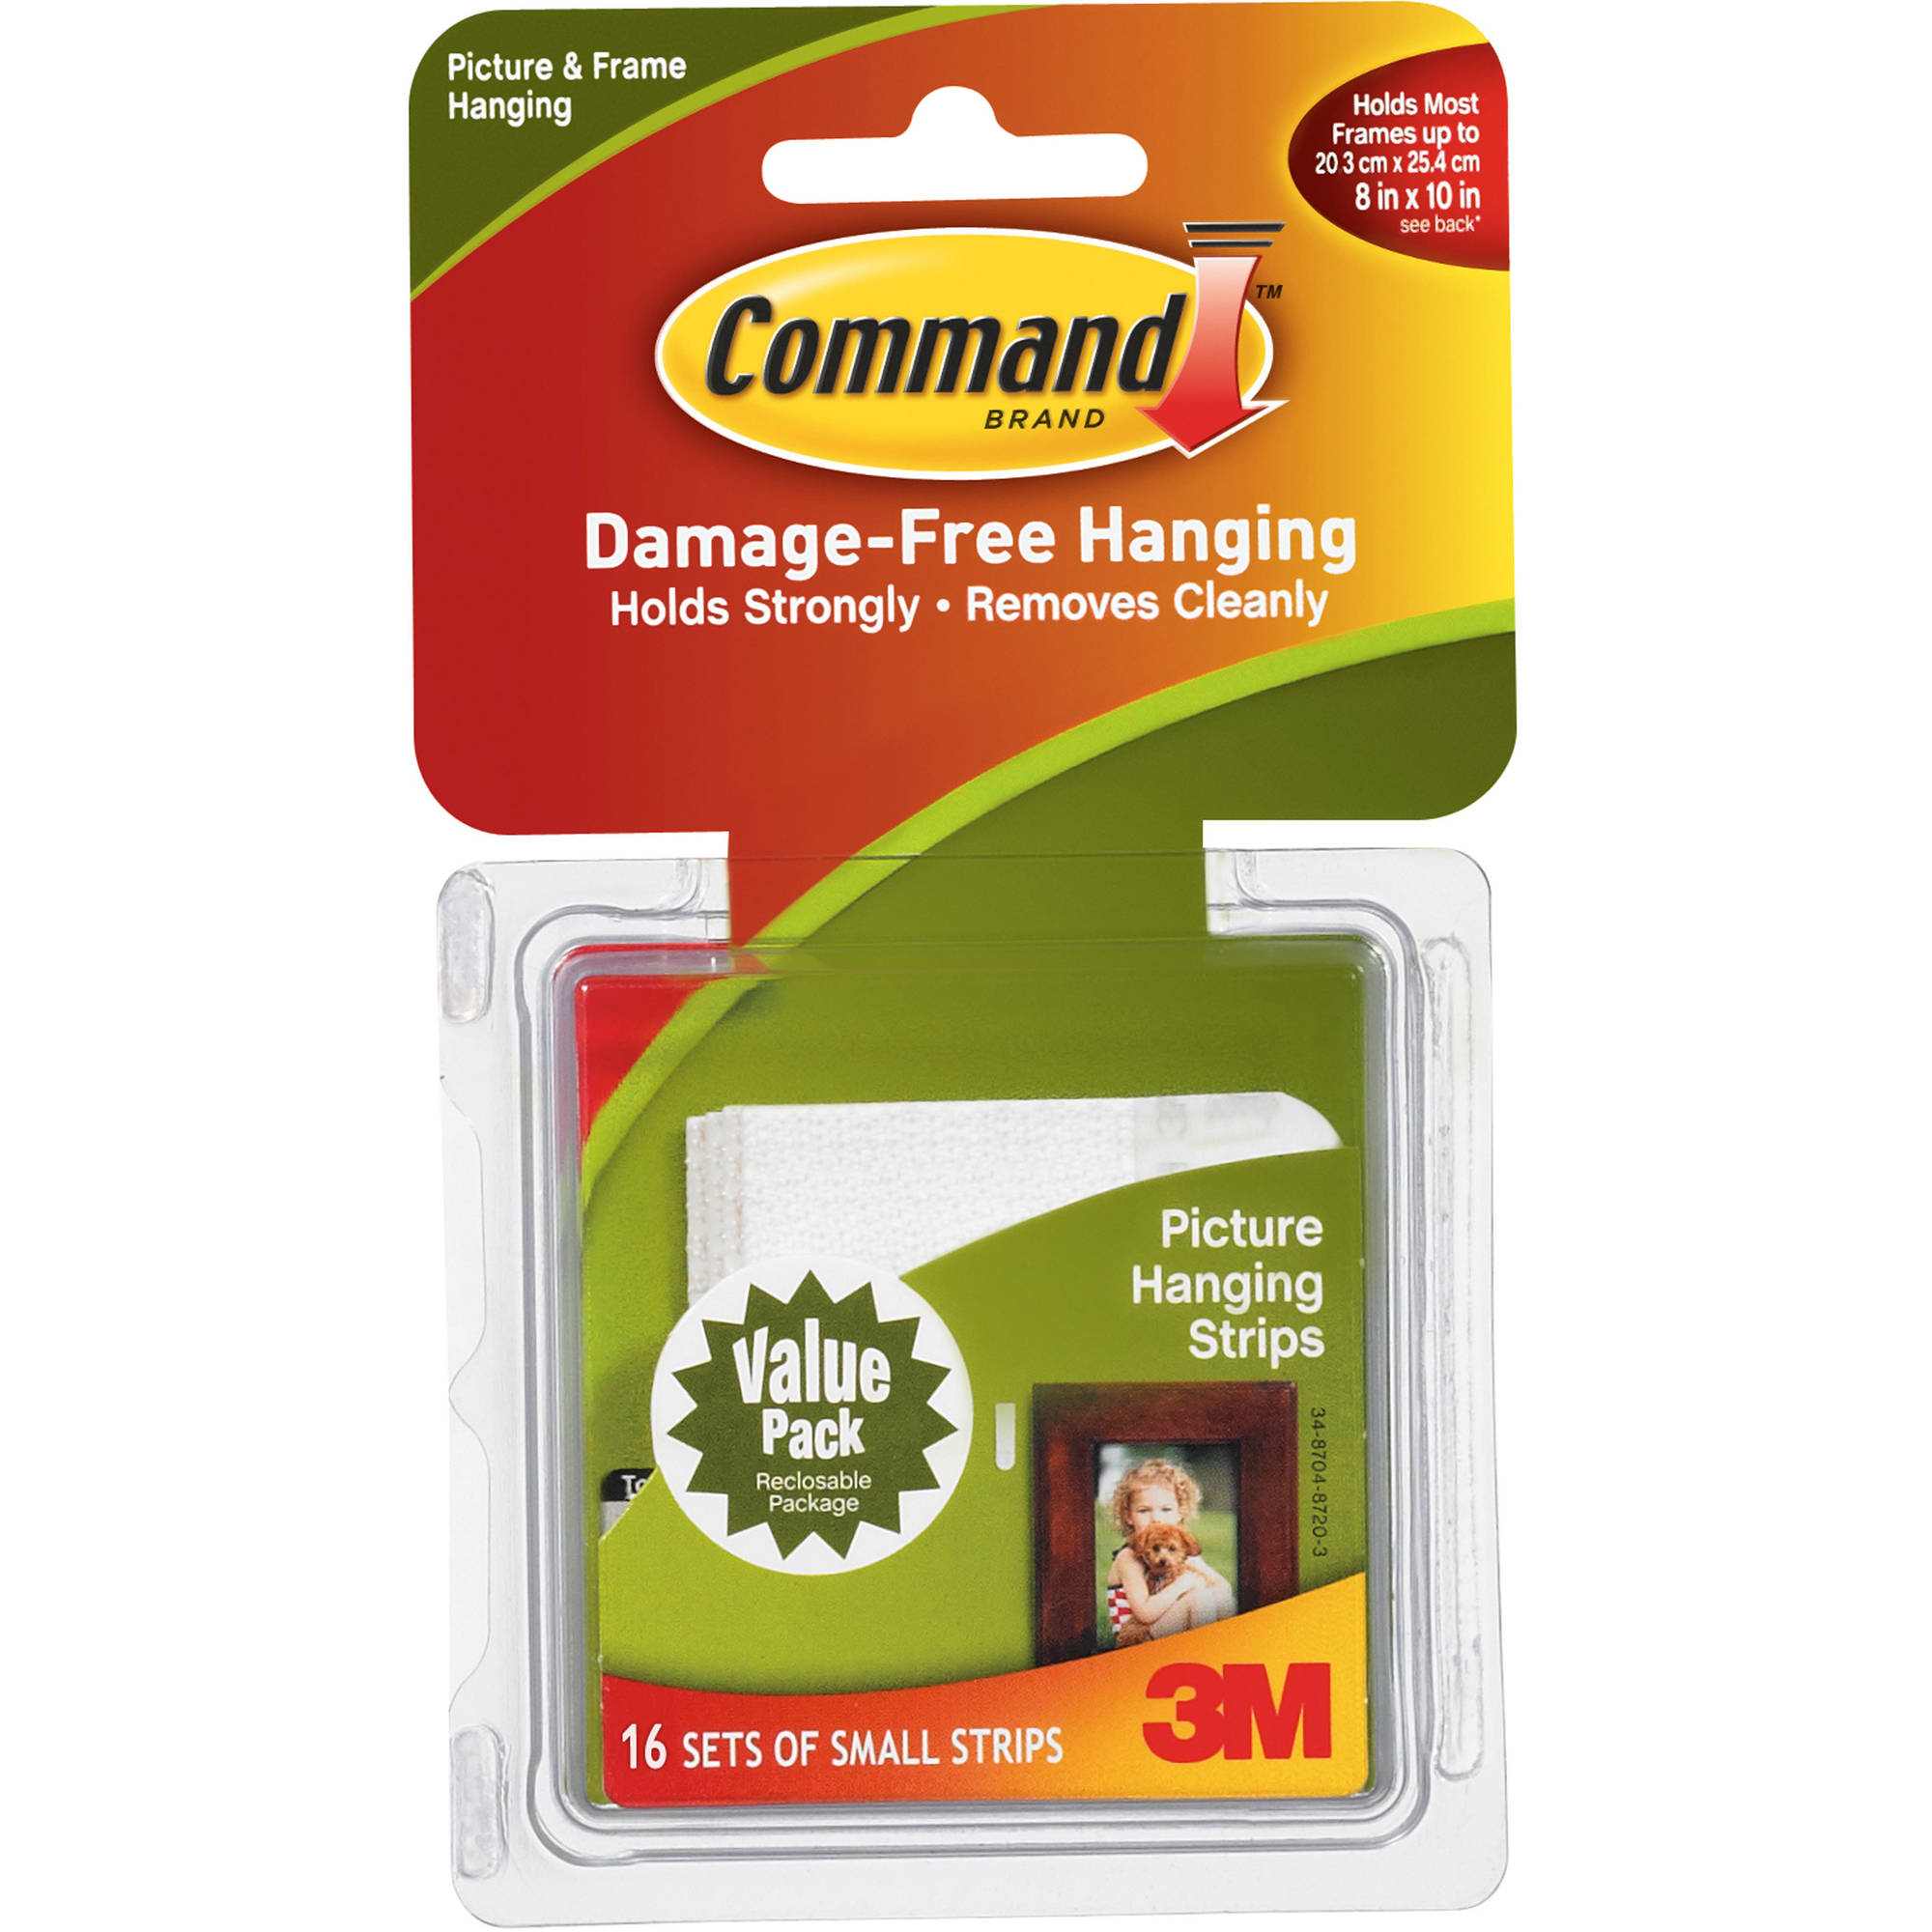 Command Small Picture Hanging Strips, White, 16 Sets of Strips, 17205VP-WM